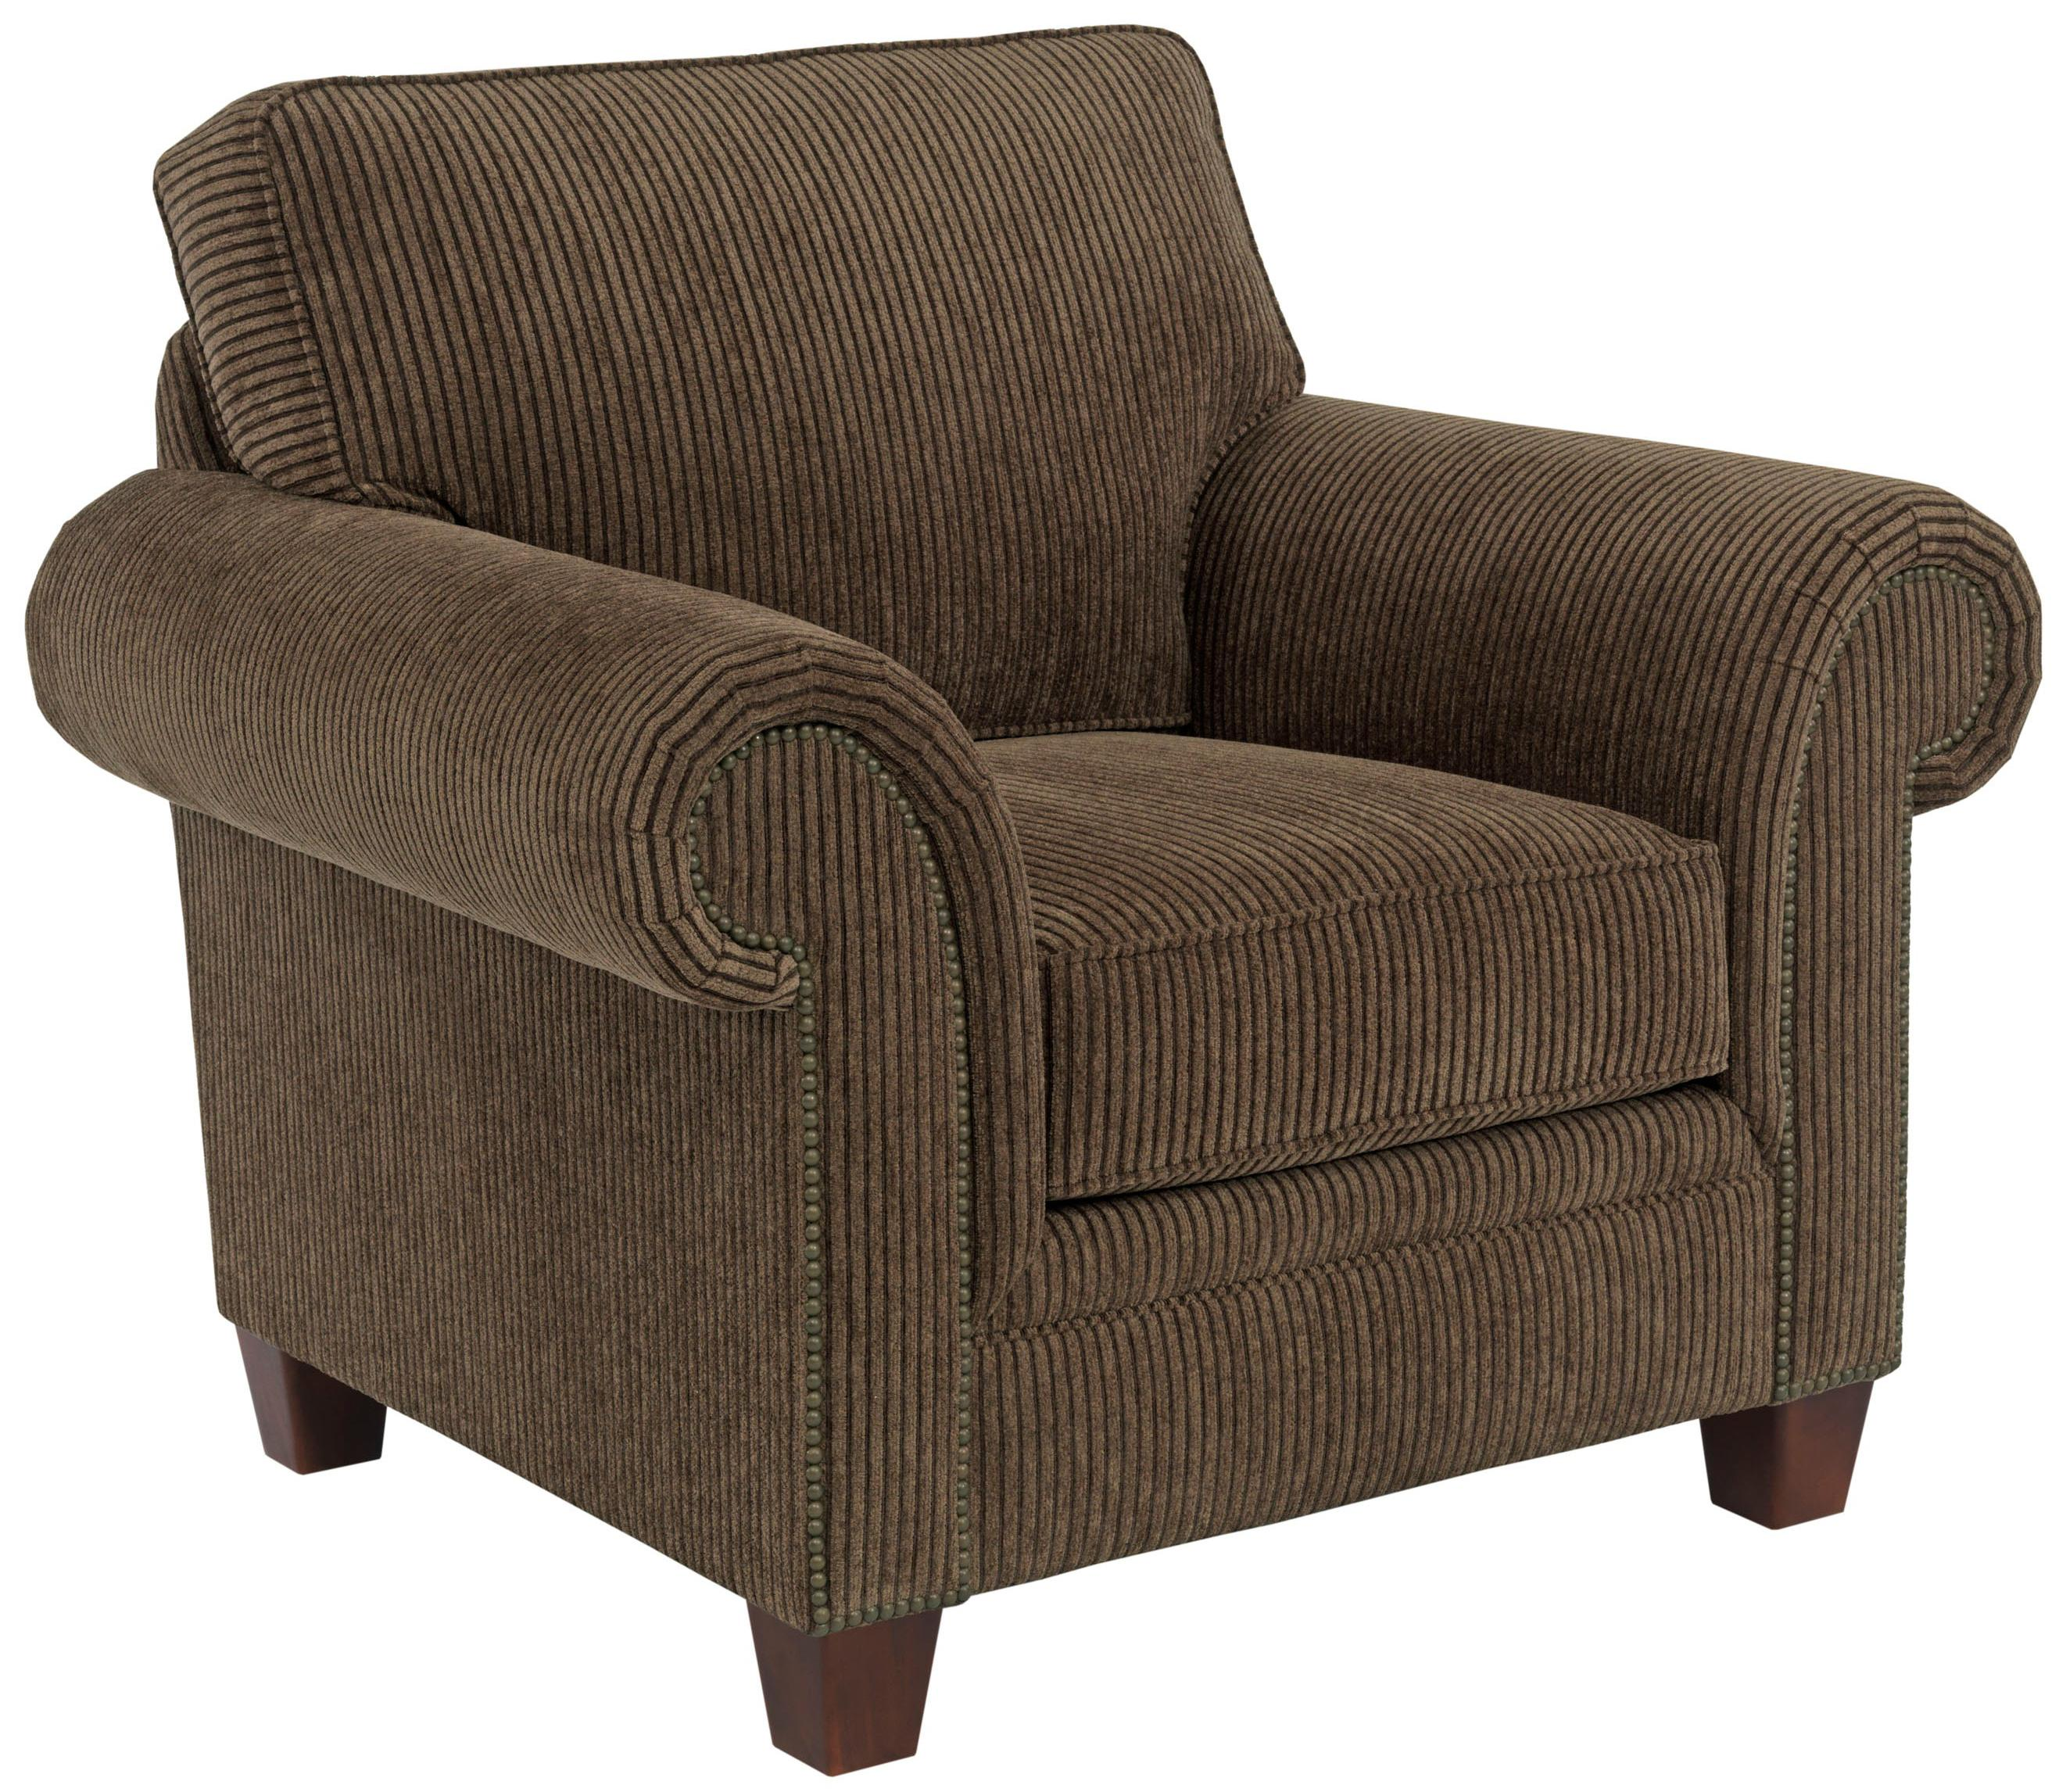 Broyhill Armchair: Broyhill Furniture Travis Transitional Upholstered Arm